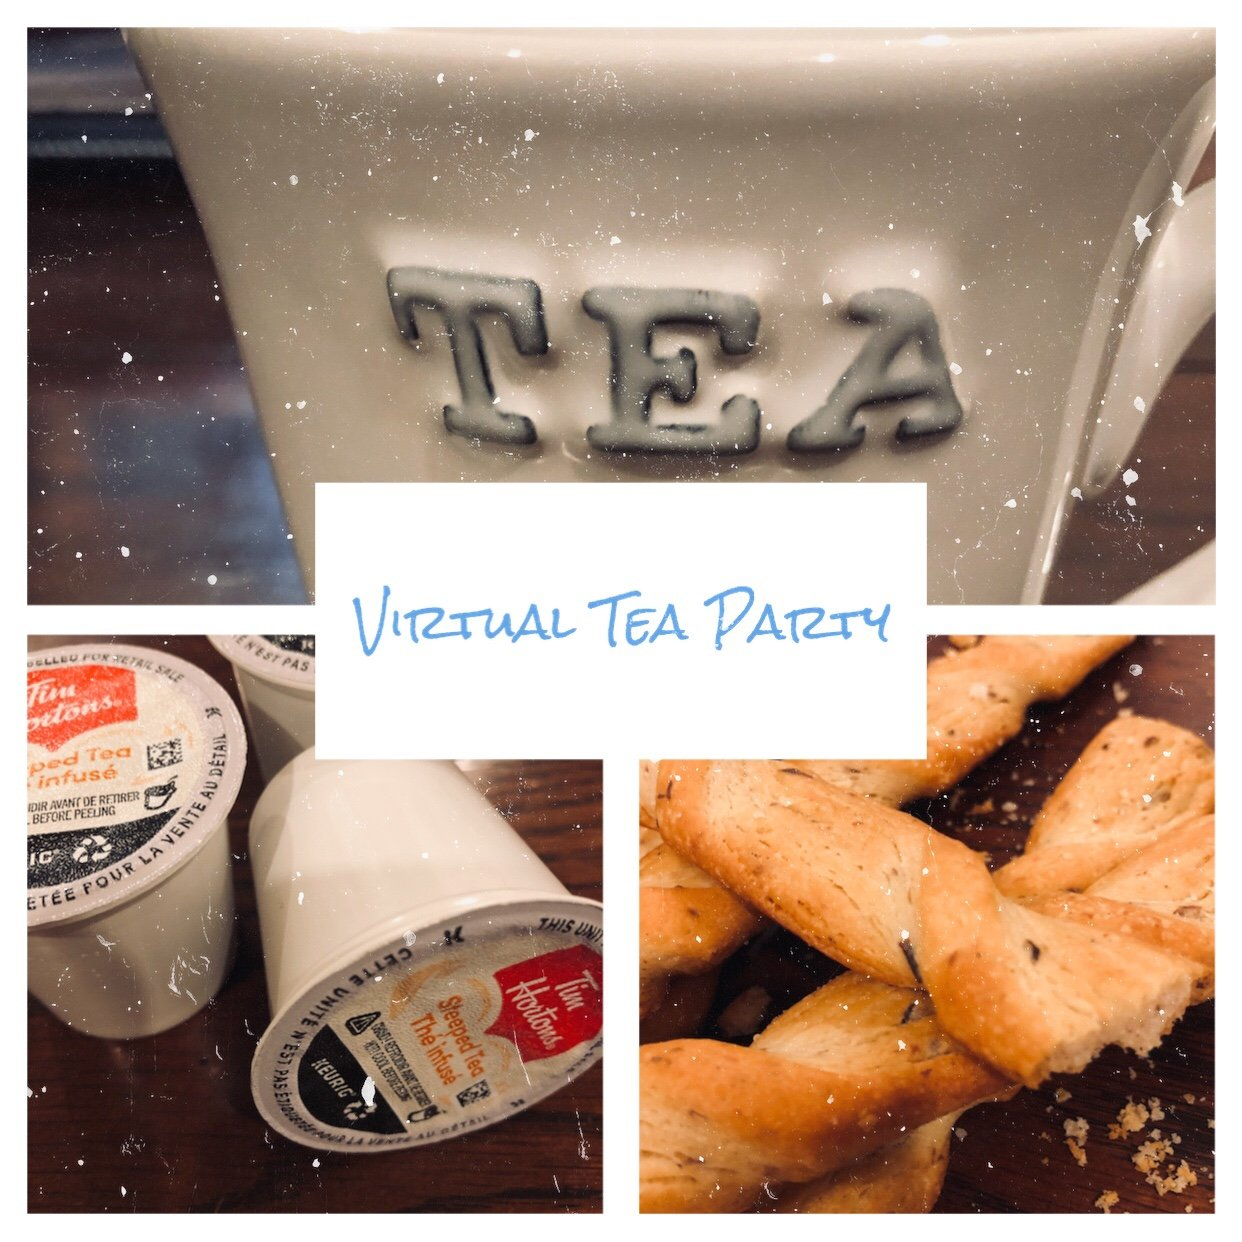 virtual tea party with olive breadsticks